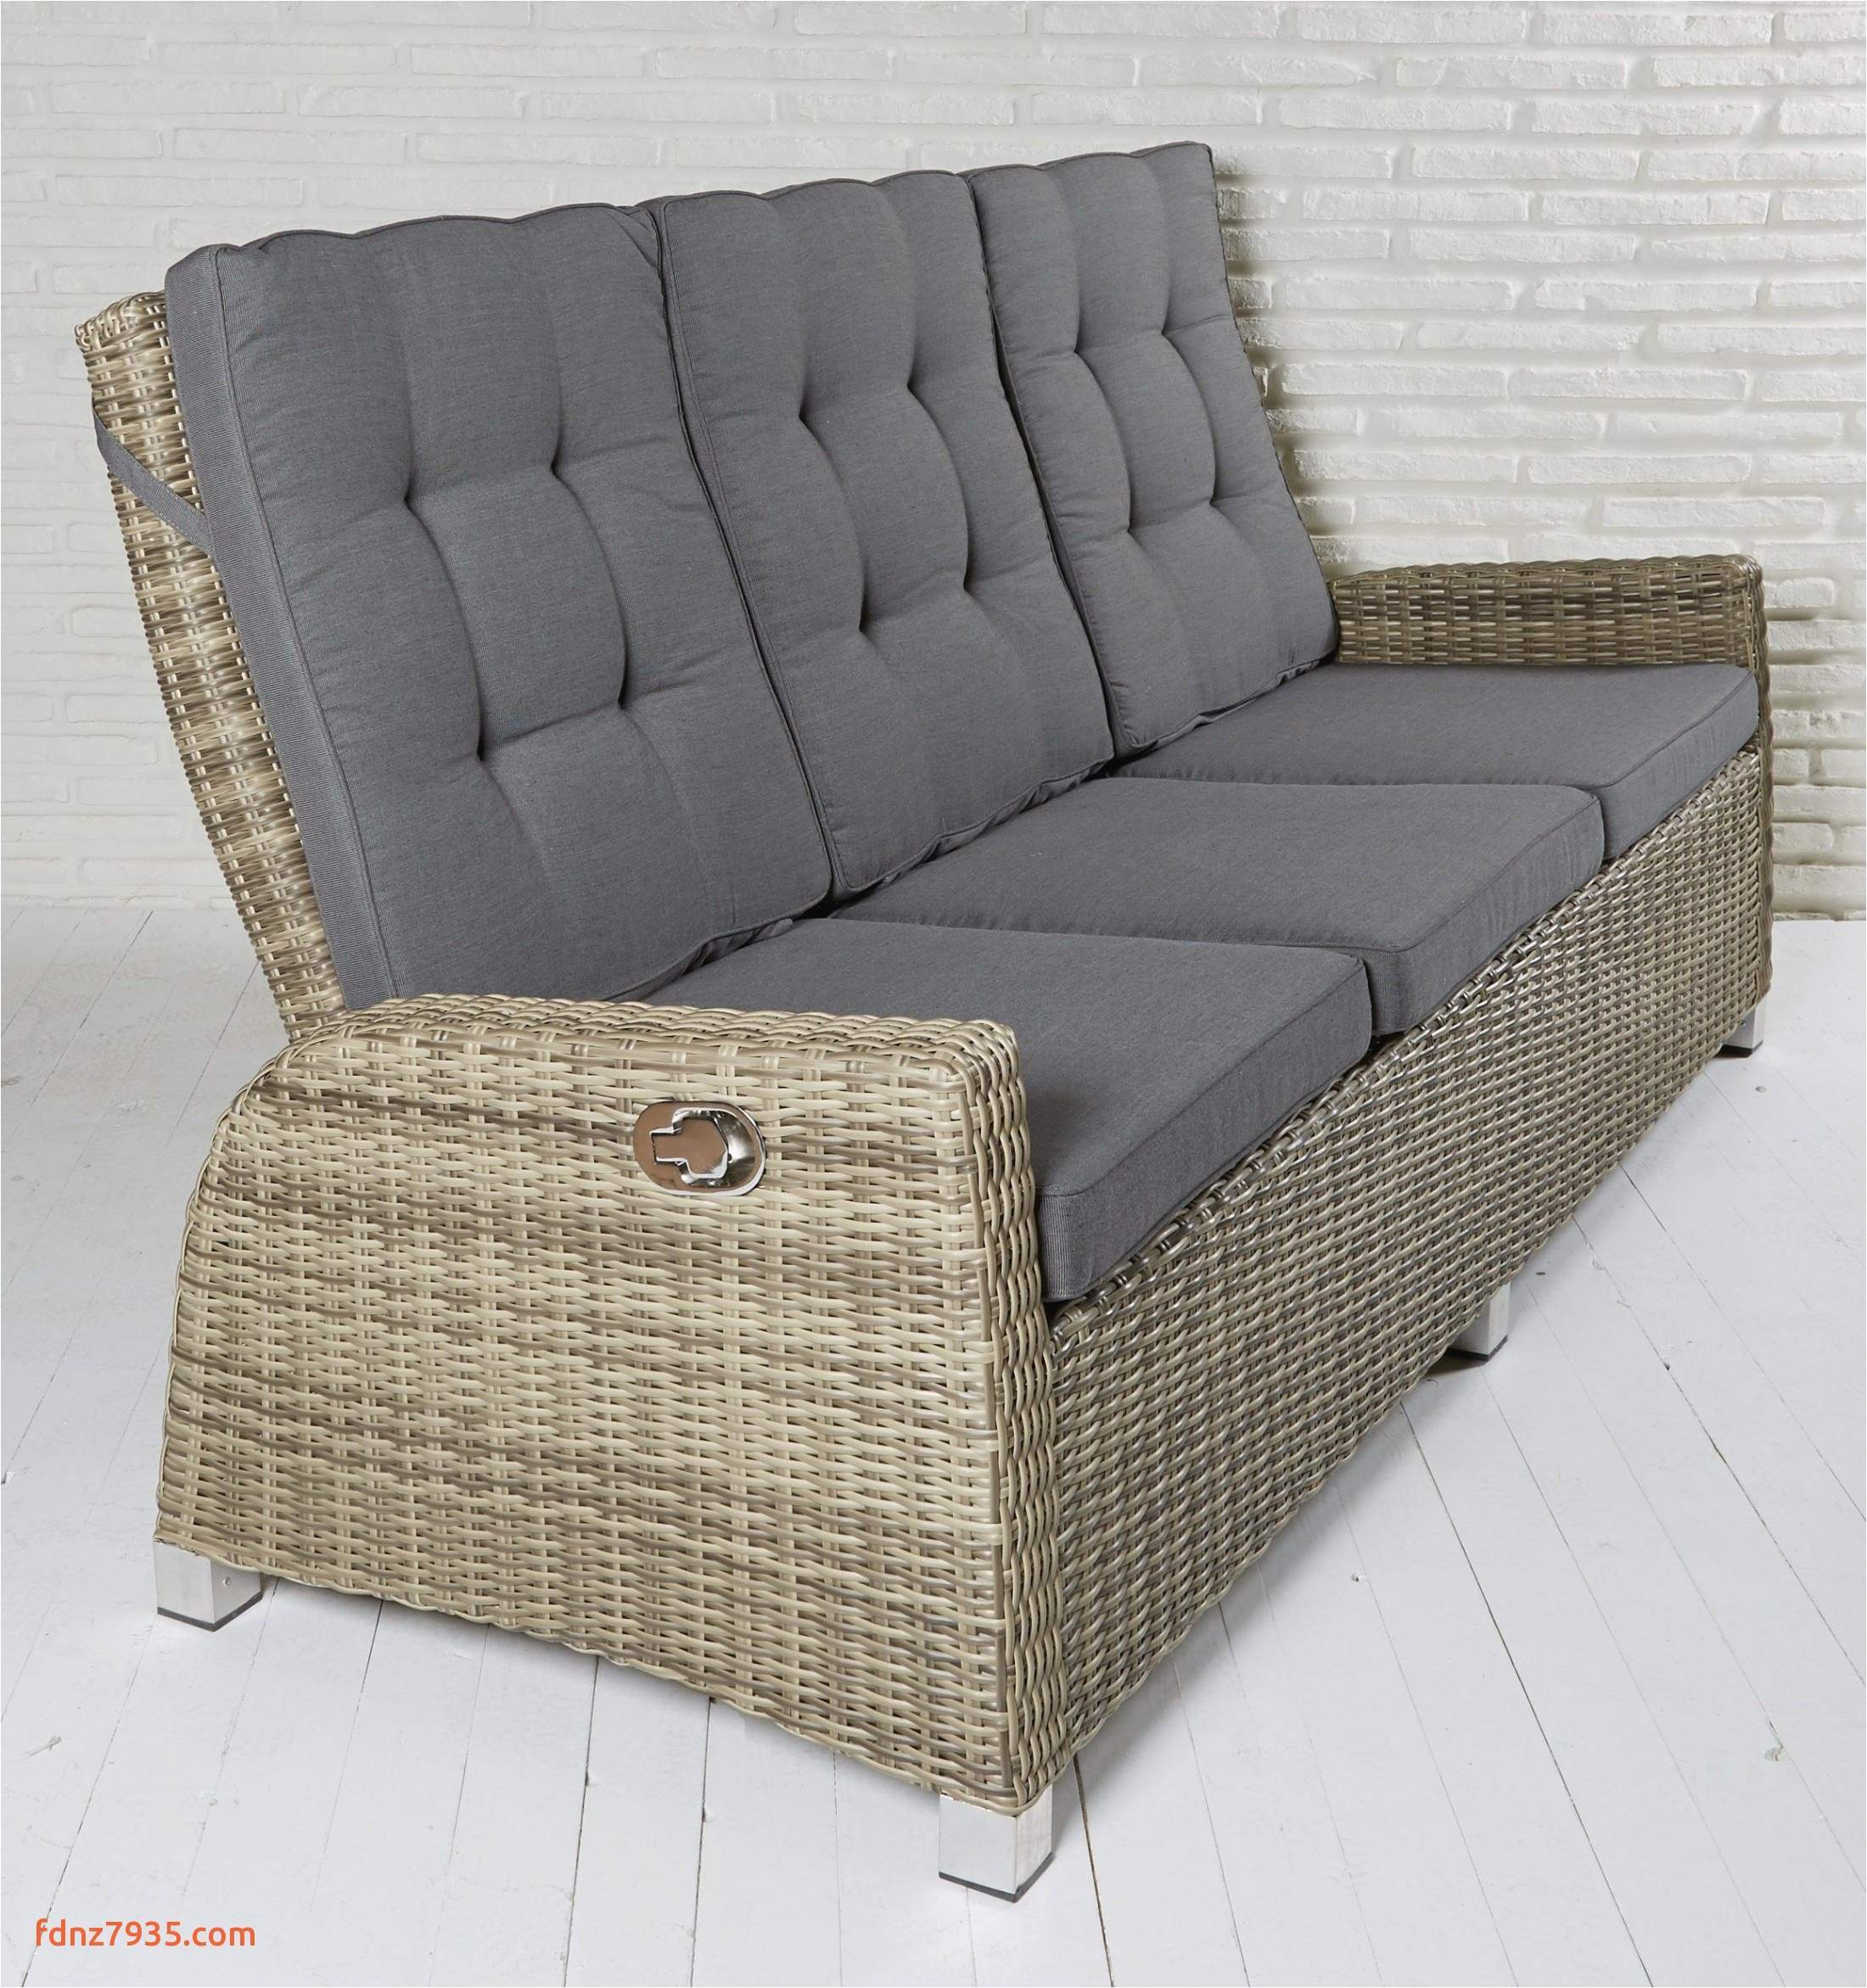 wohnzimmer ecksofa elegant gray pull out couch fresh sofa design of wohnzimmer ecksofa